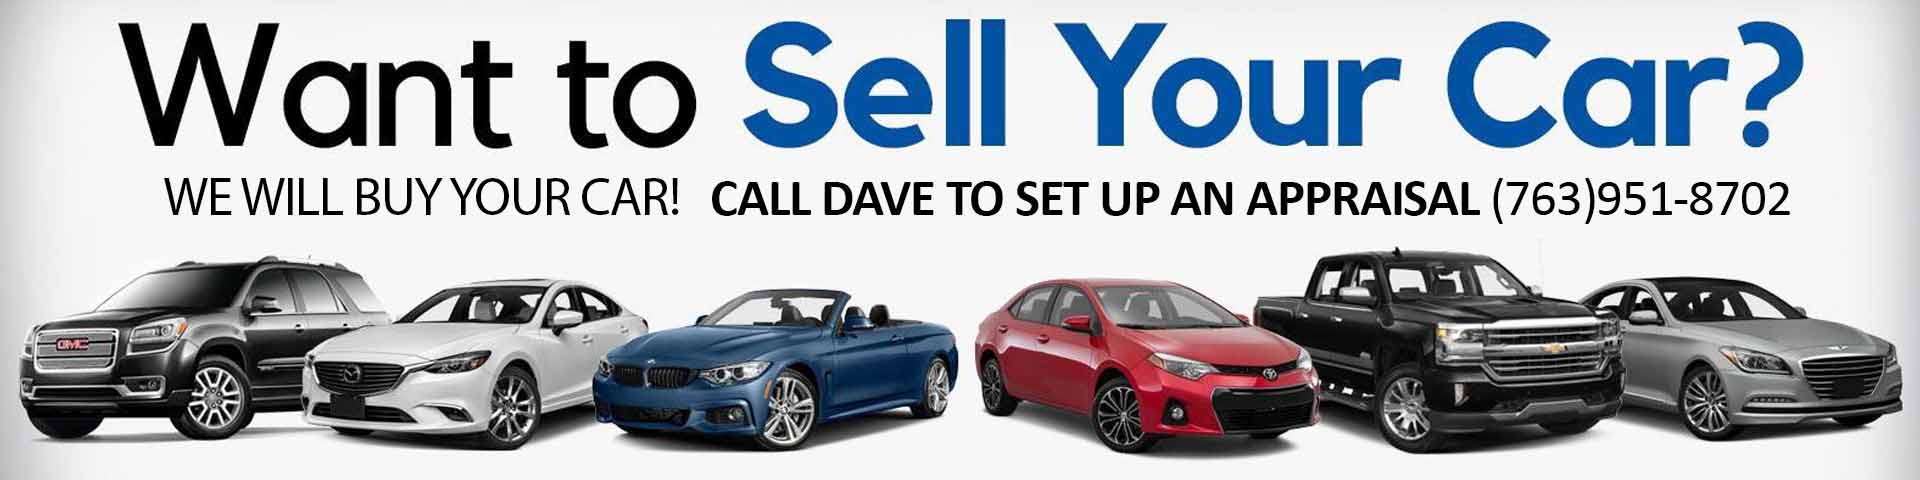 We will buy your car even if you dont buy from us